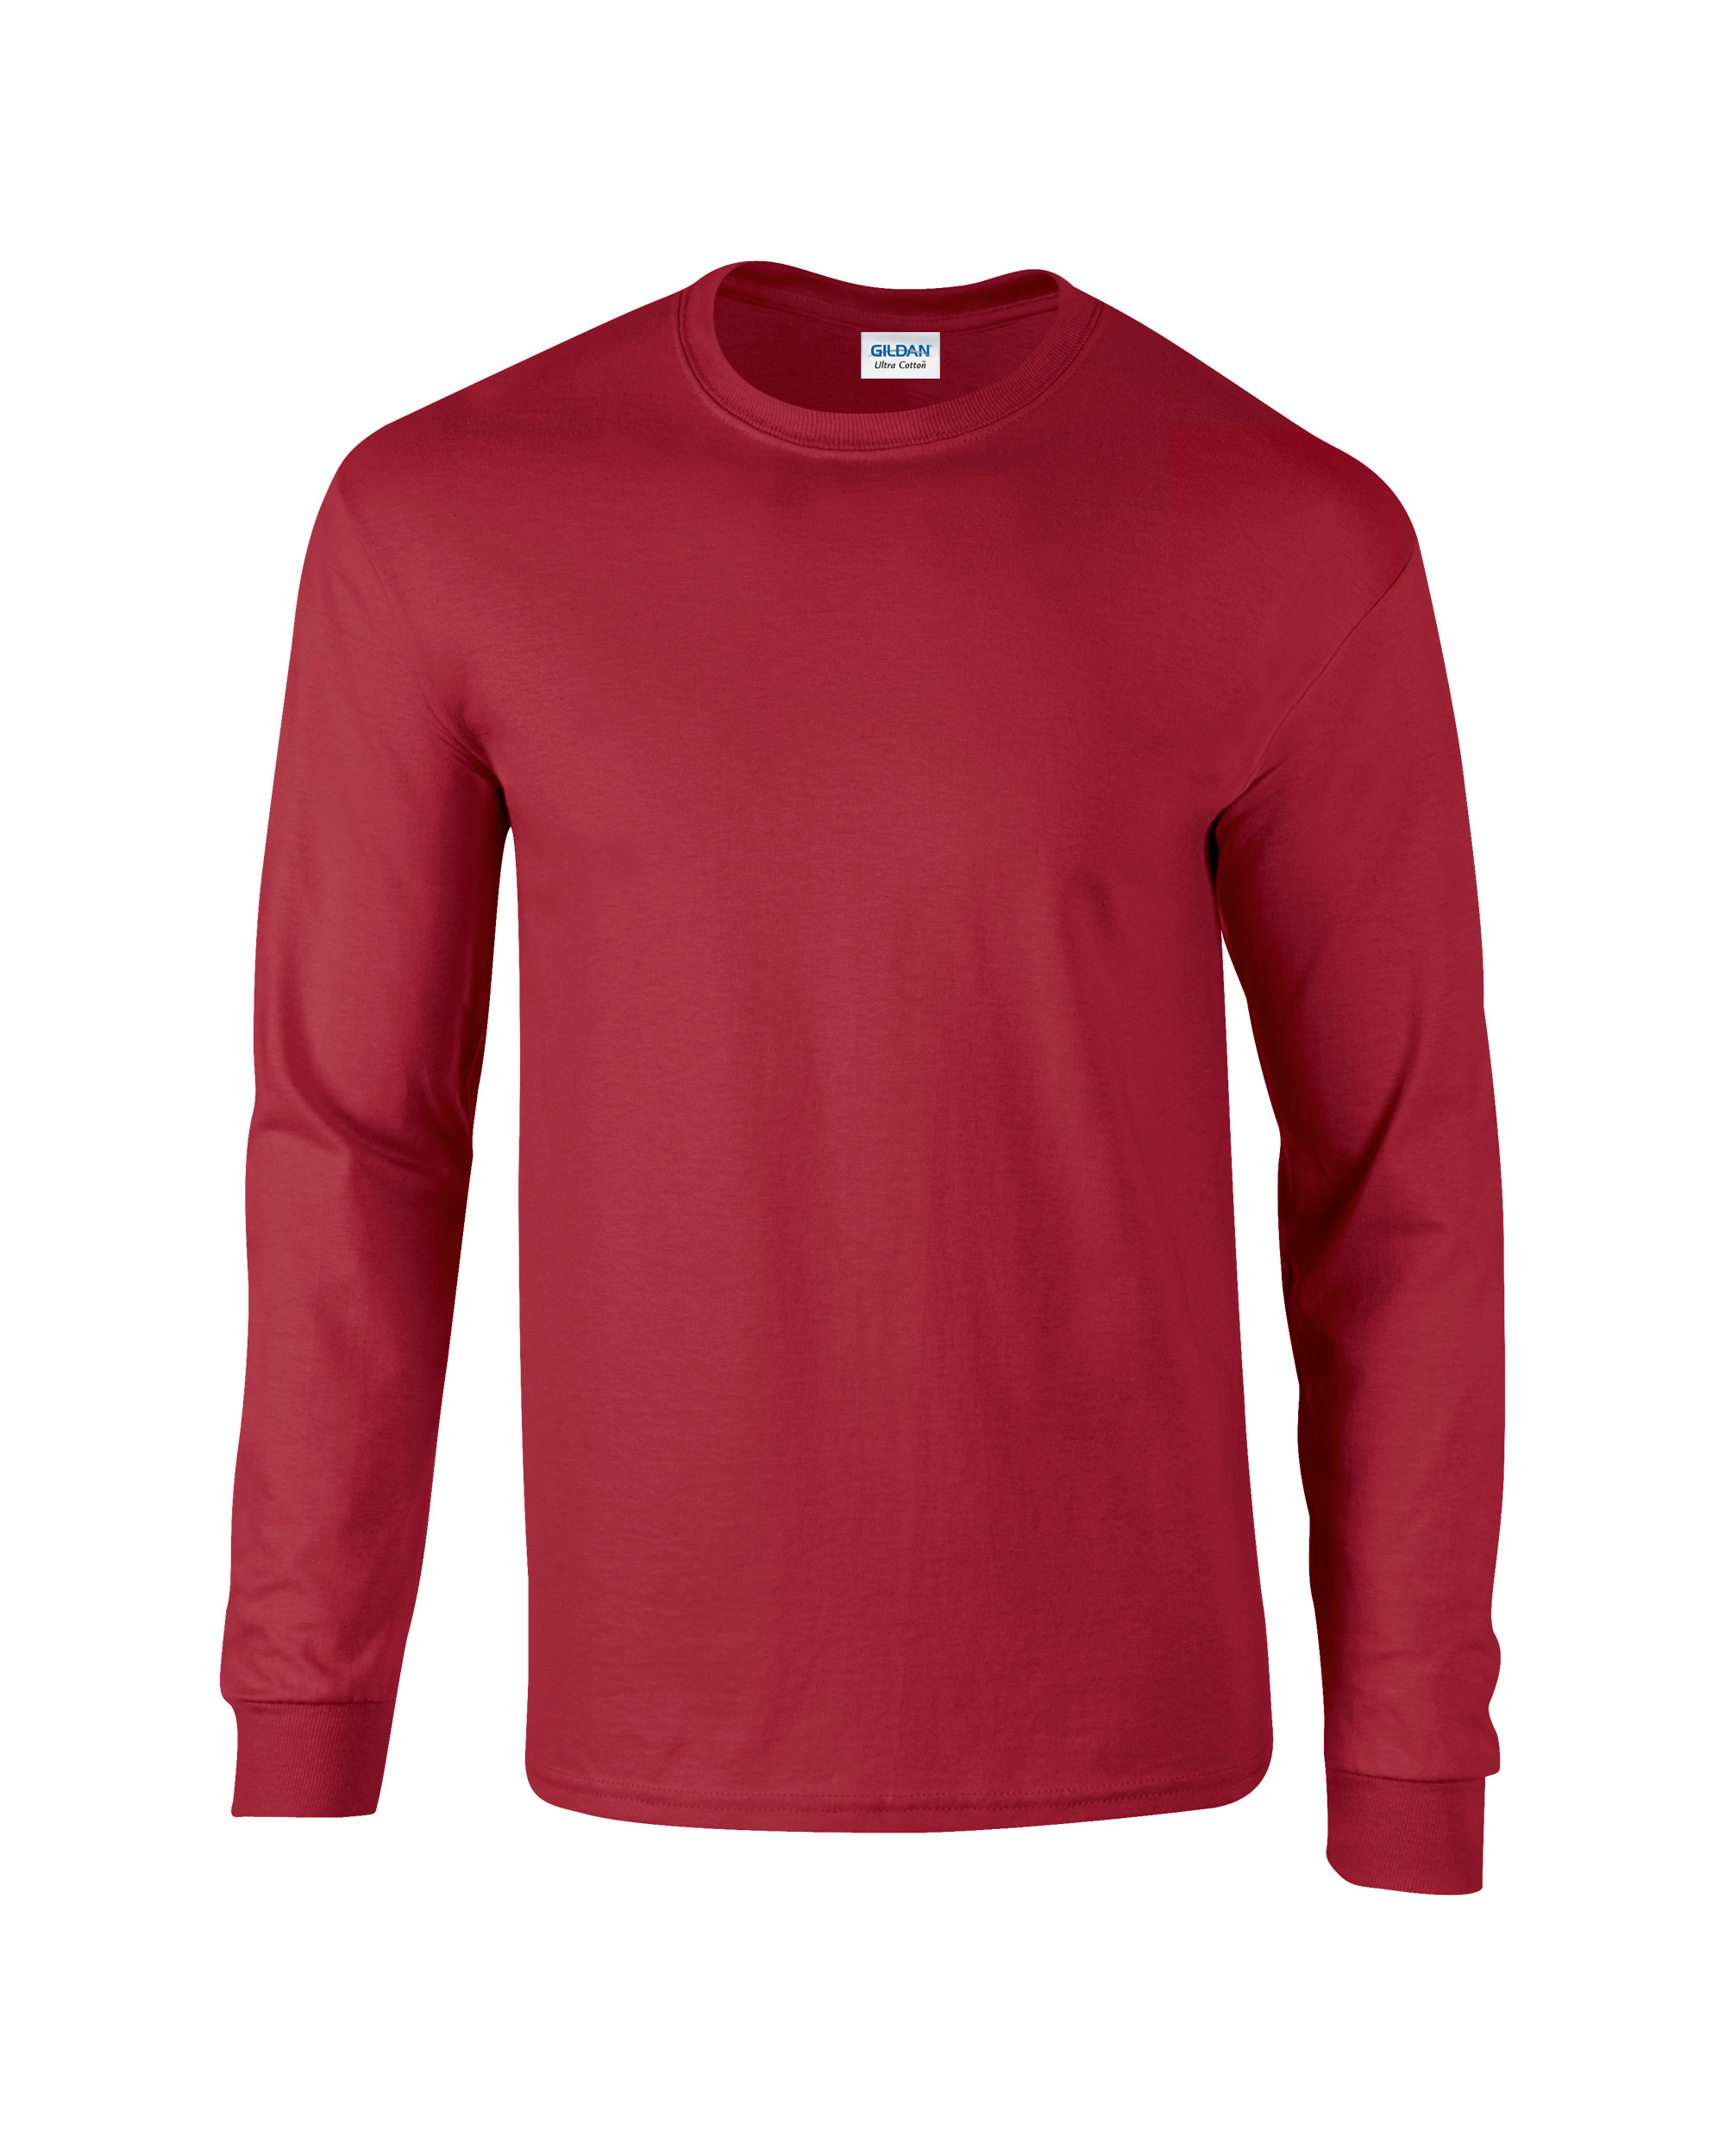 cb504a9f5995 ... Adult Unisex Ultra Cotton Long Sleeve T-Shirt Cardinal Red Front ...